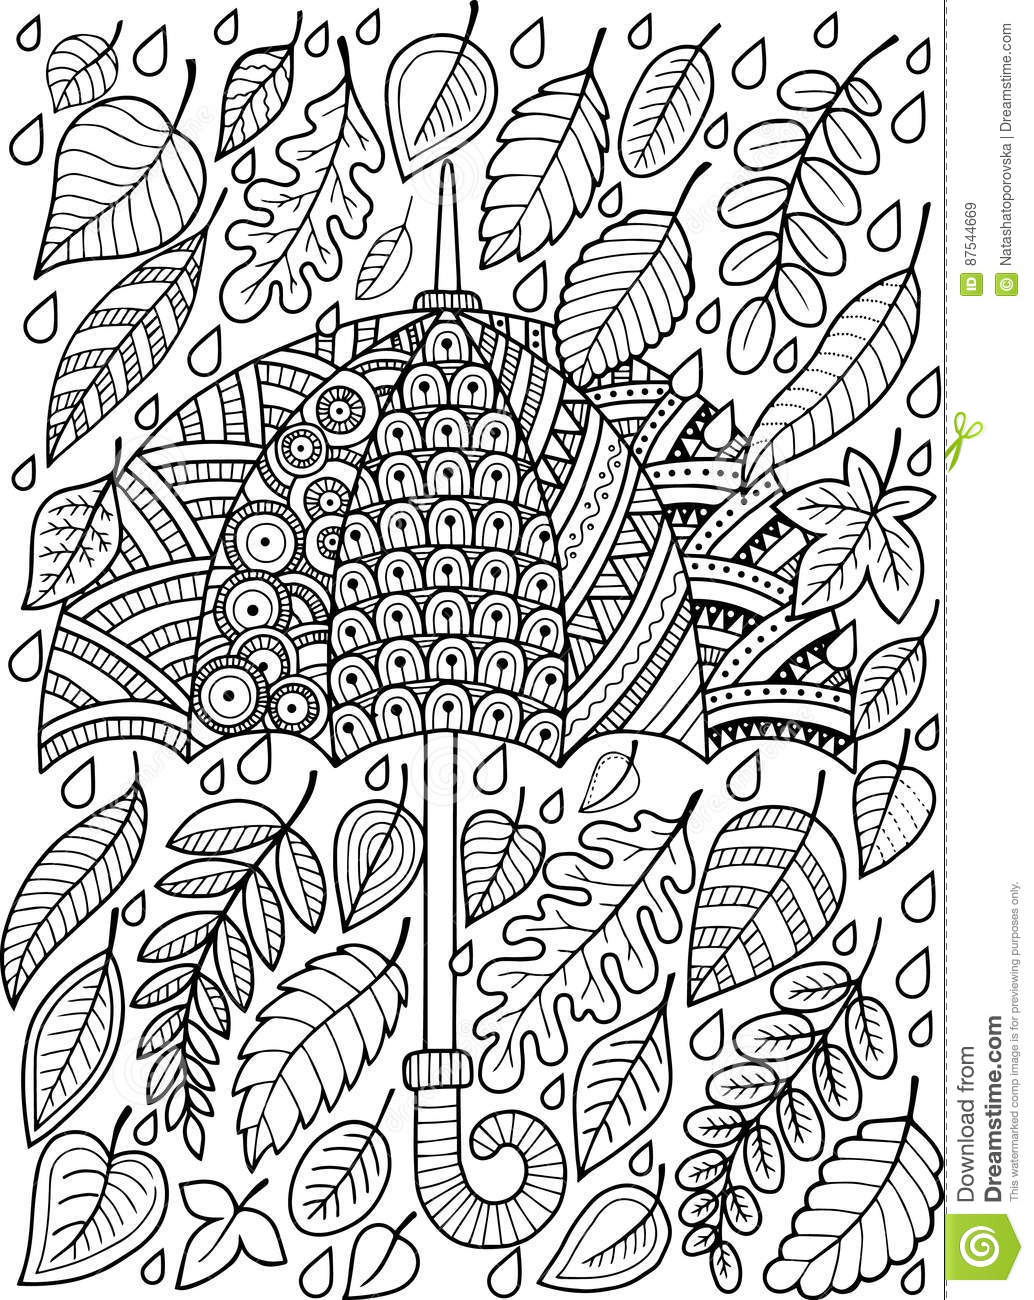 Free coloring pages rain - Hand Draw Doodle Coloring Page For Adult I Love Autumn Rain Fashion Umbrella Style